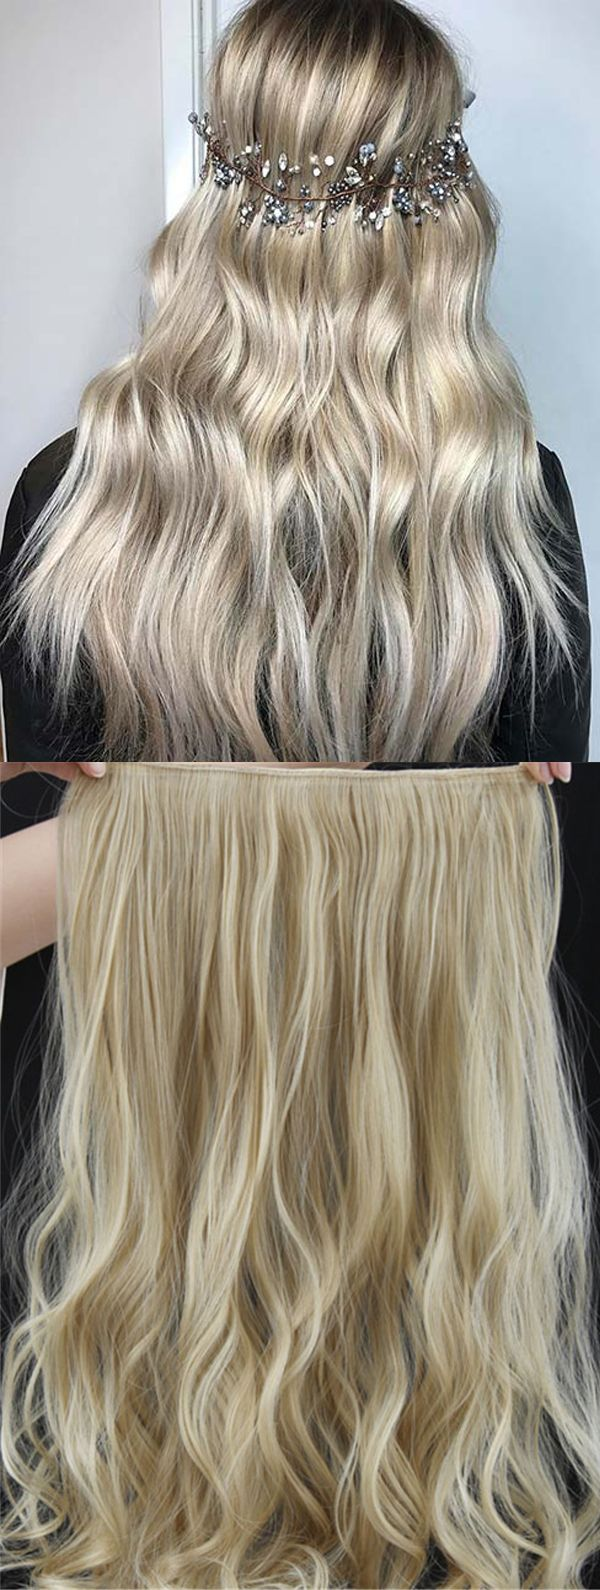 22tm613 Mix Color Long Wave One Piece Clip In Hair Extension 24